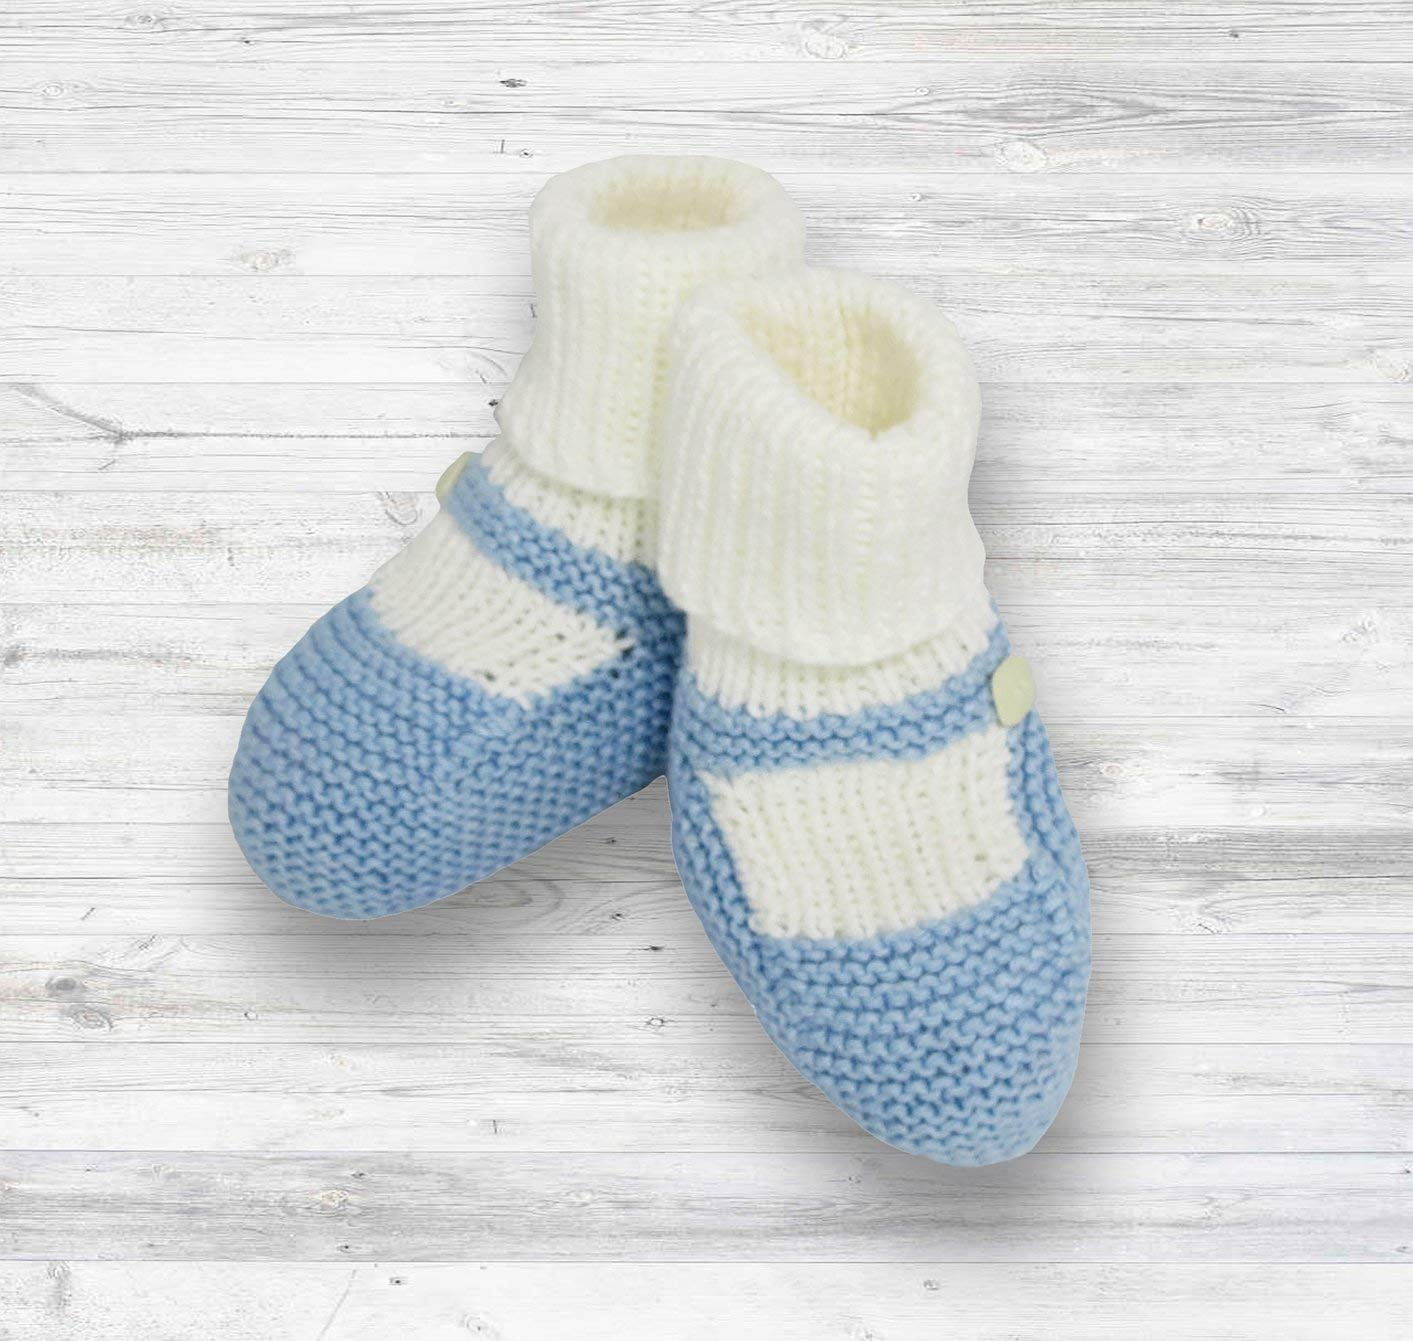 f90fcb490e7d0 Cheap How Knit Baby Booties, find How Knit Baby Booties deals on ...